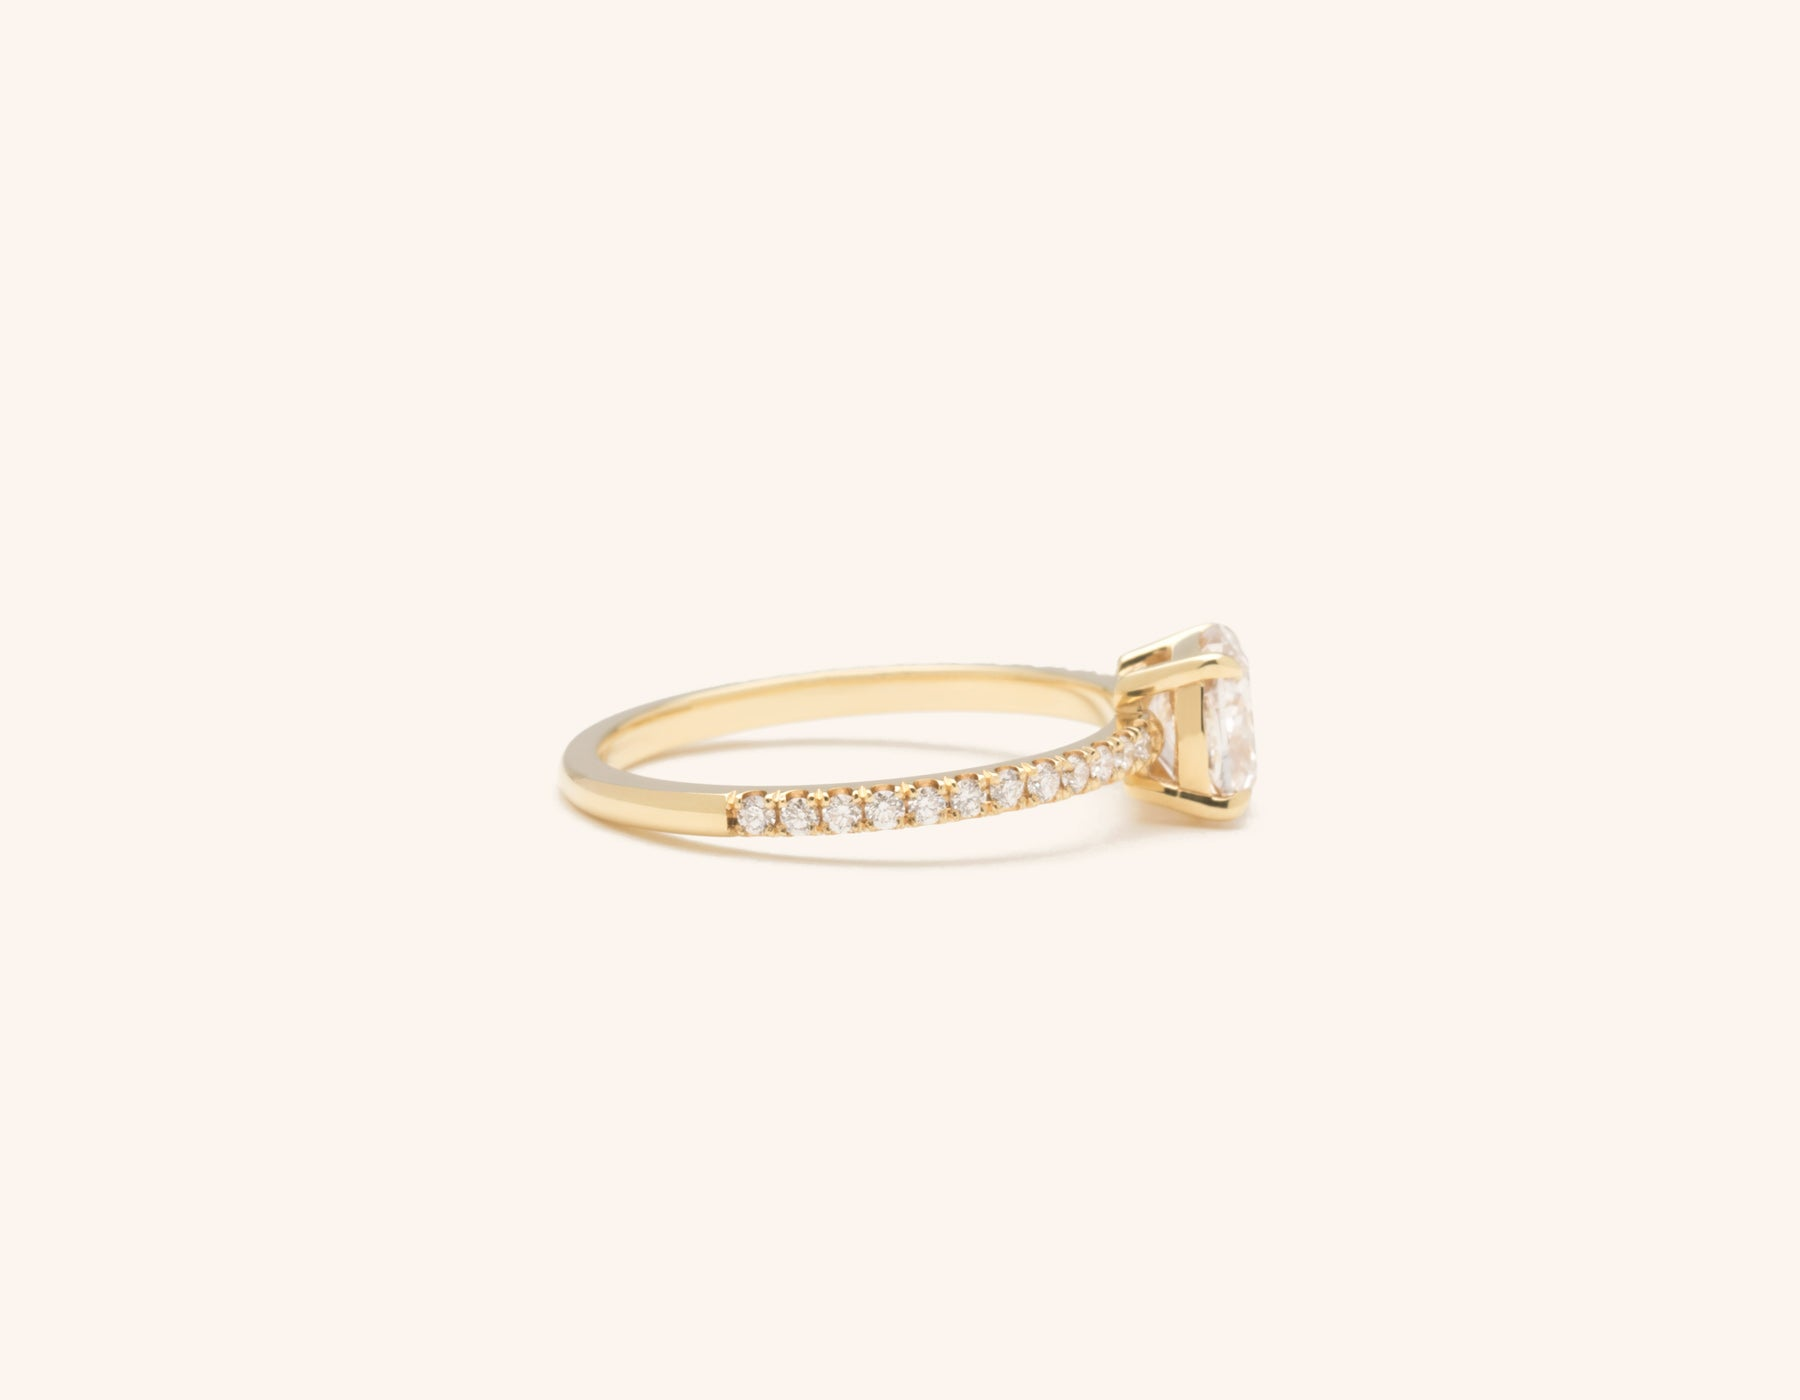 Simple modern 18k solid yellow gold 1 carat Cushion pave diamond engagement ring Vrai & Oro